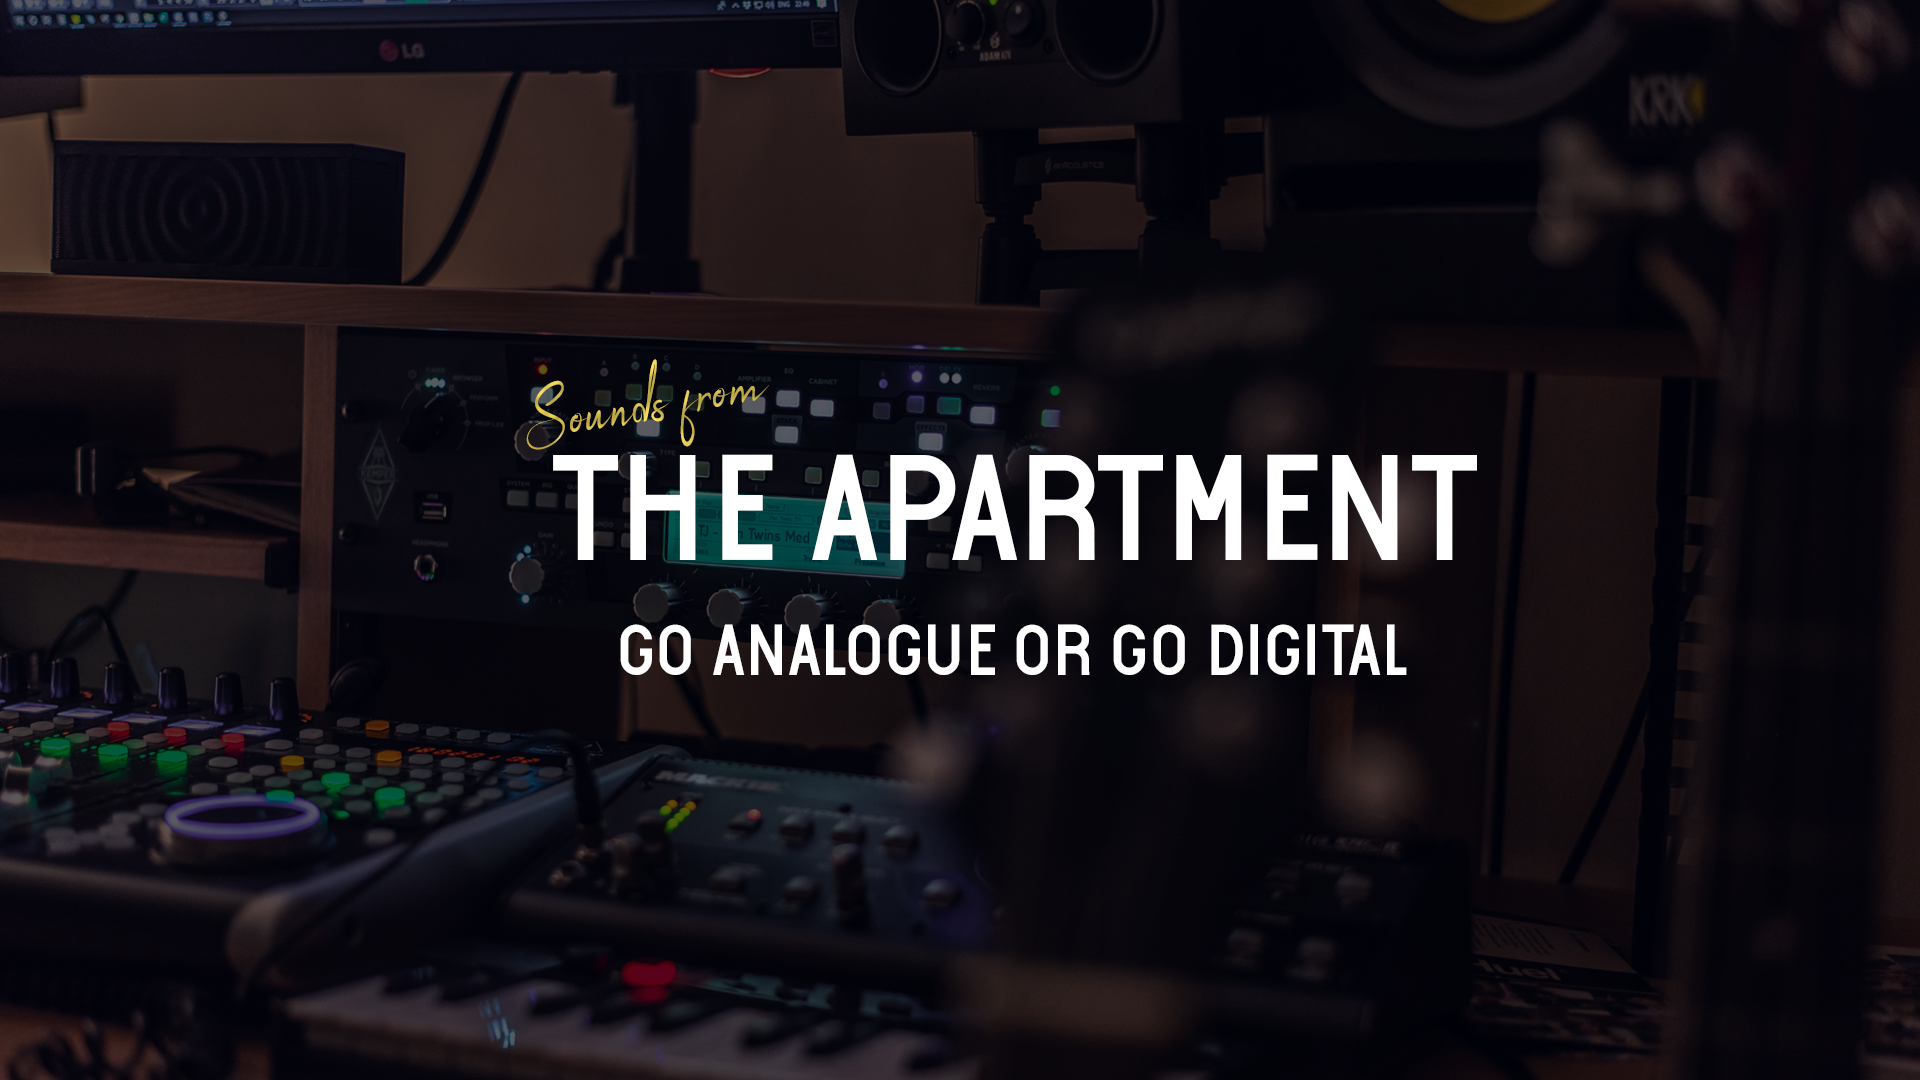 Sounds from the apartment article go analogue or go digital